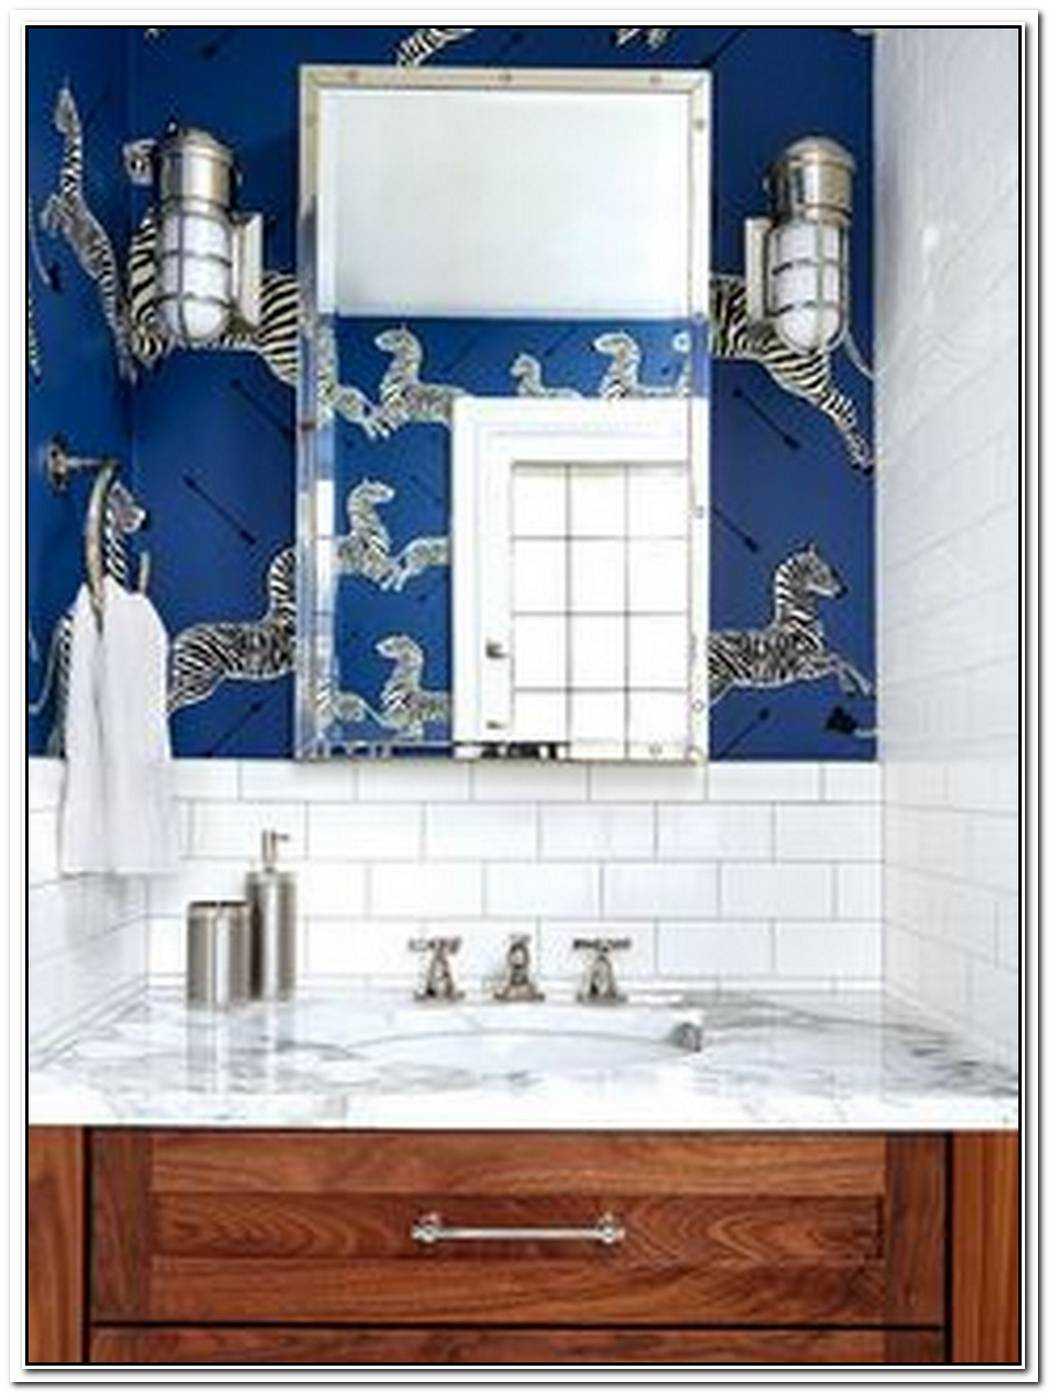 Mixed Metals And Cobalt Blue Create A Stunning Bathroom